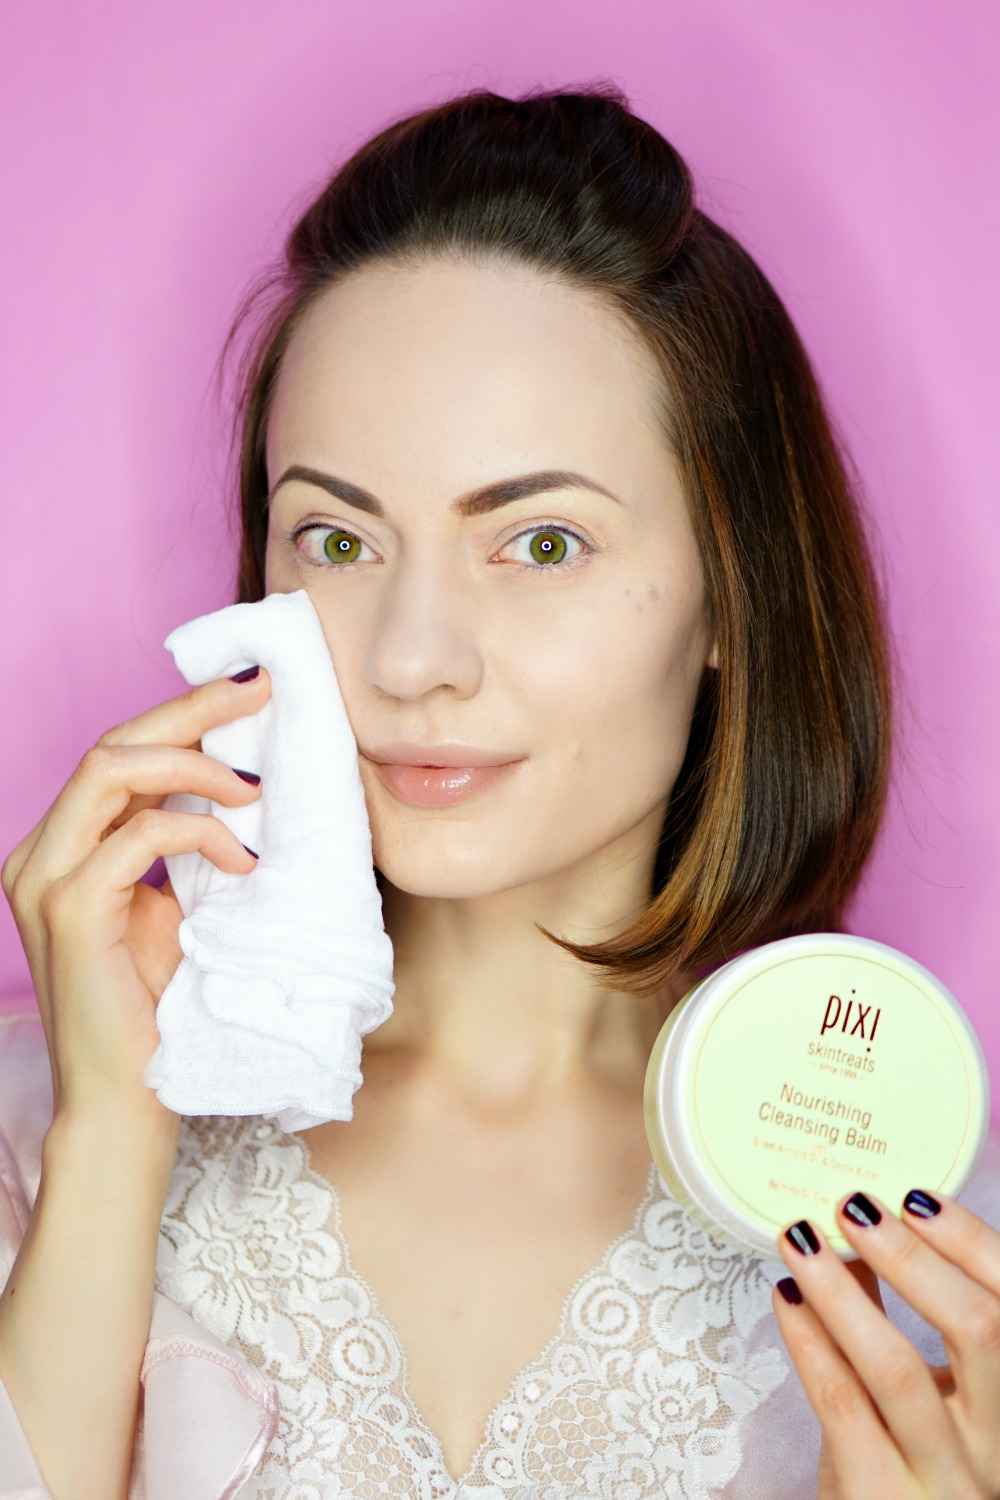 pixi-nourishing-cleansing-balm-review